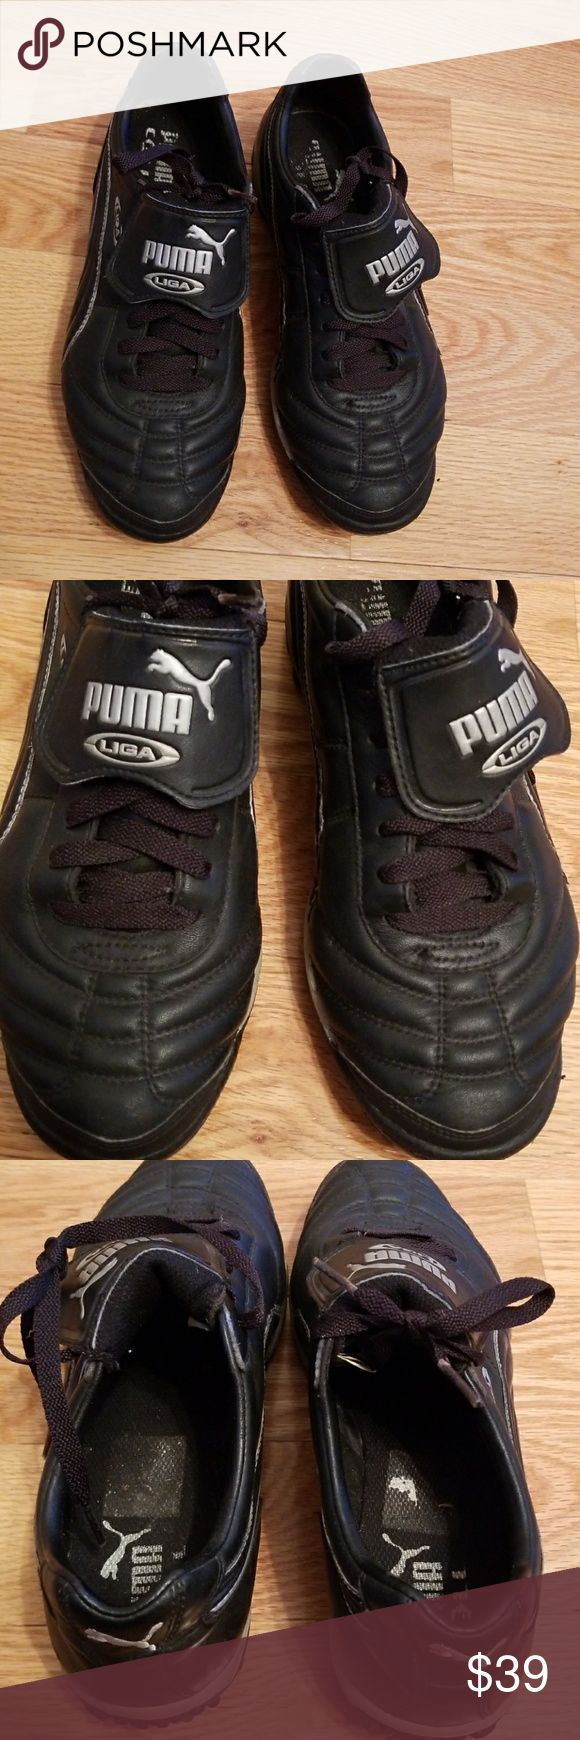 Puma liga TURF sneakers Black PUMA Liga turf shoes/ sneakers. Only worn a few times in field hockey games! Smoke free pet free home Puma Shoes Sneakers